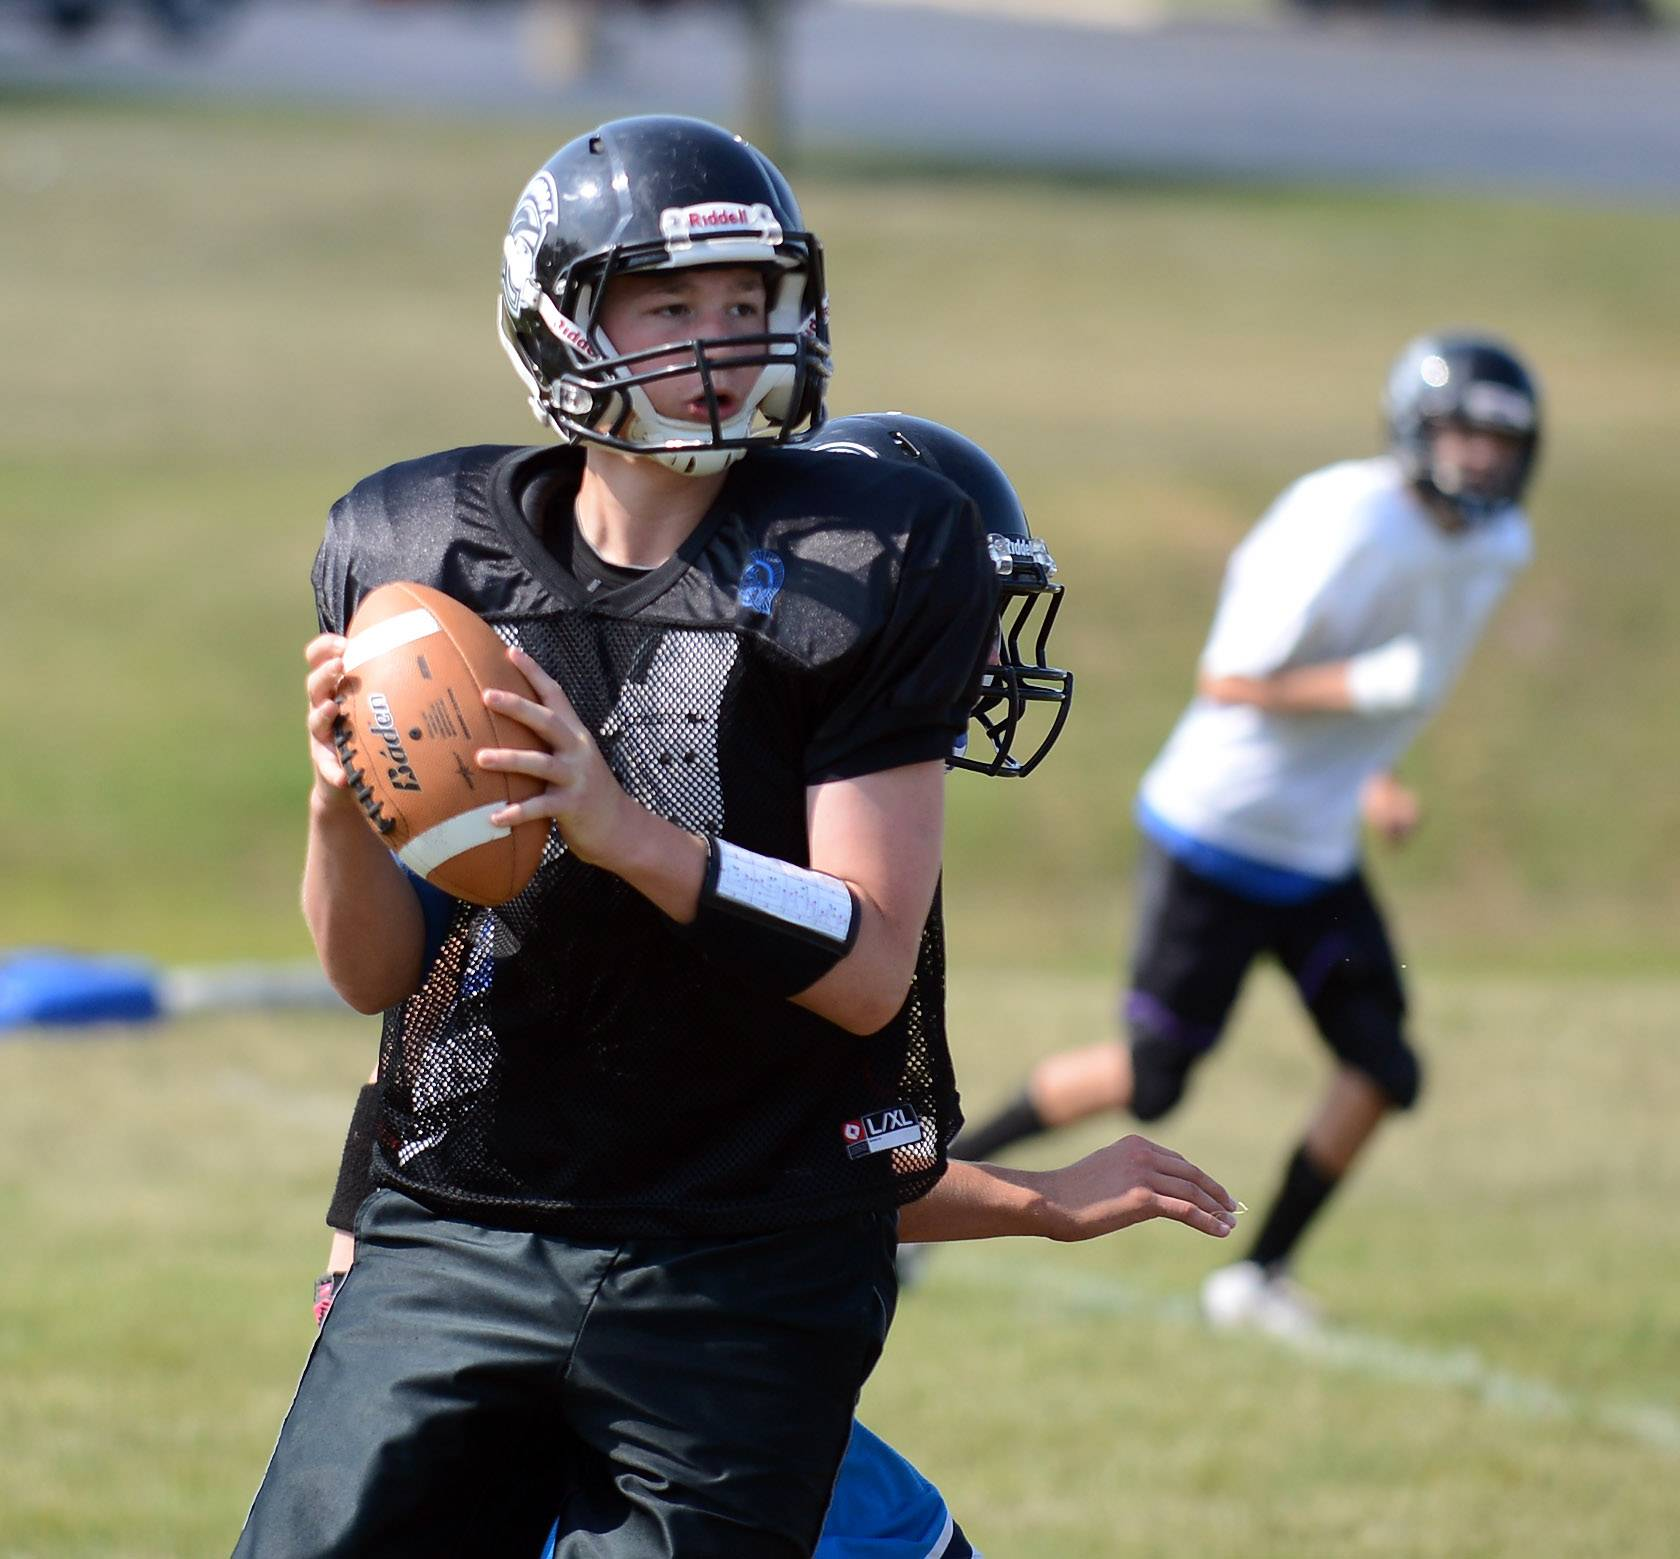 Quarterback Max Tucker is back to lead Westminster Christian in its second season of varsity football.